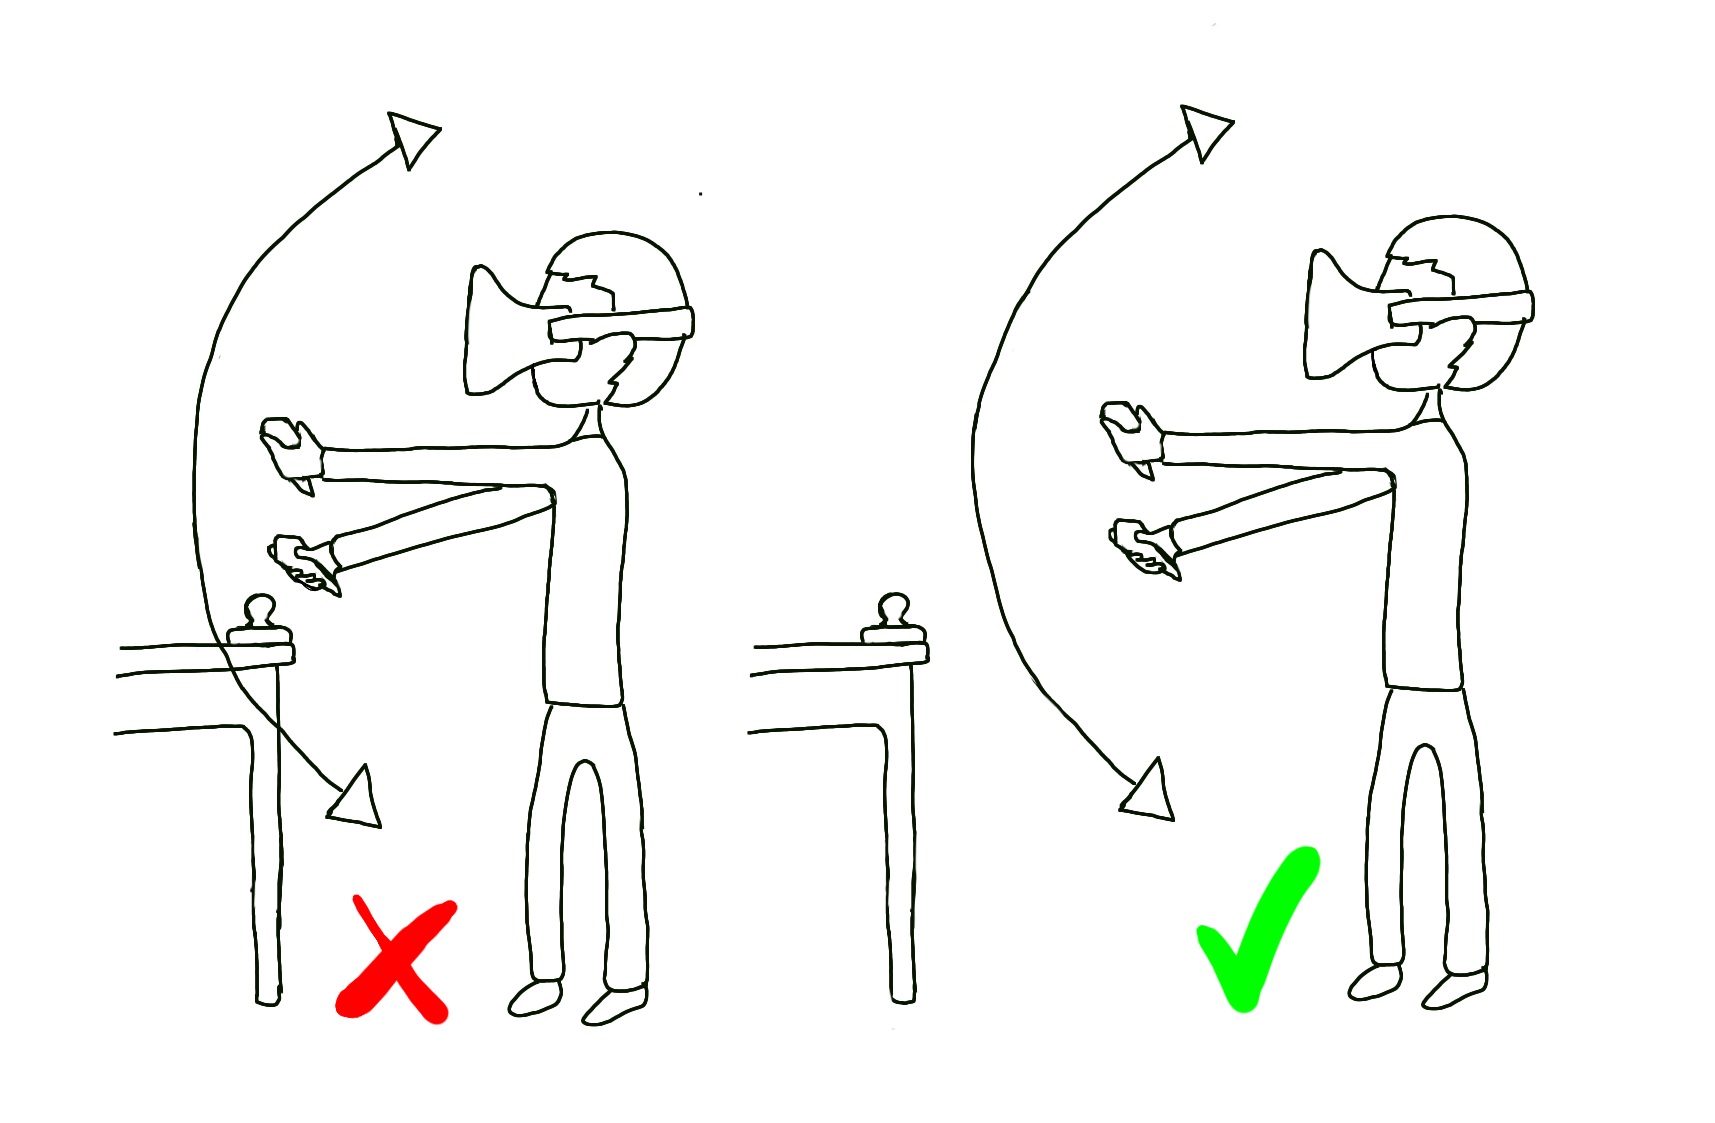 10 Tips for Safety and Success When Demoing the Oculus